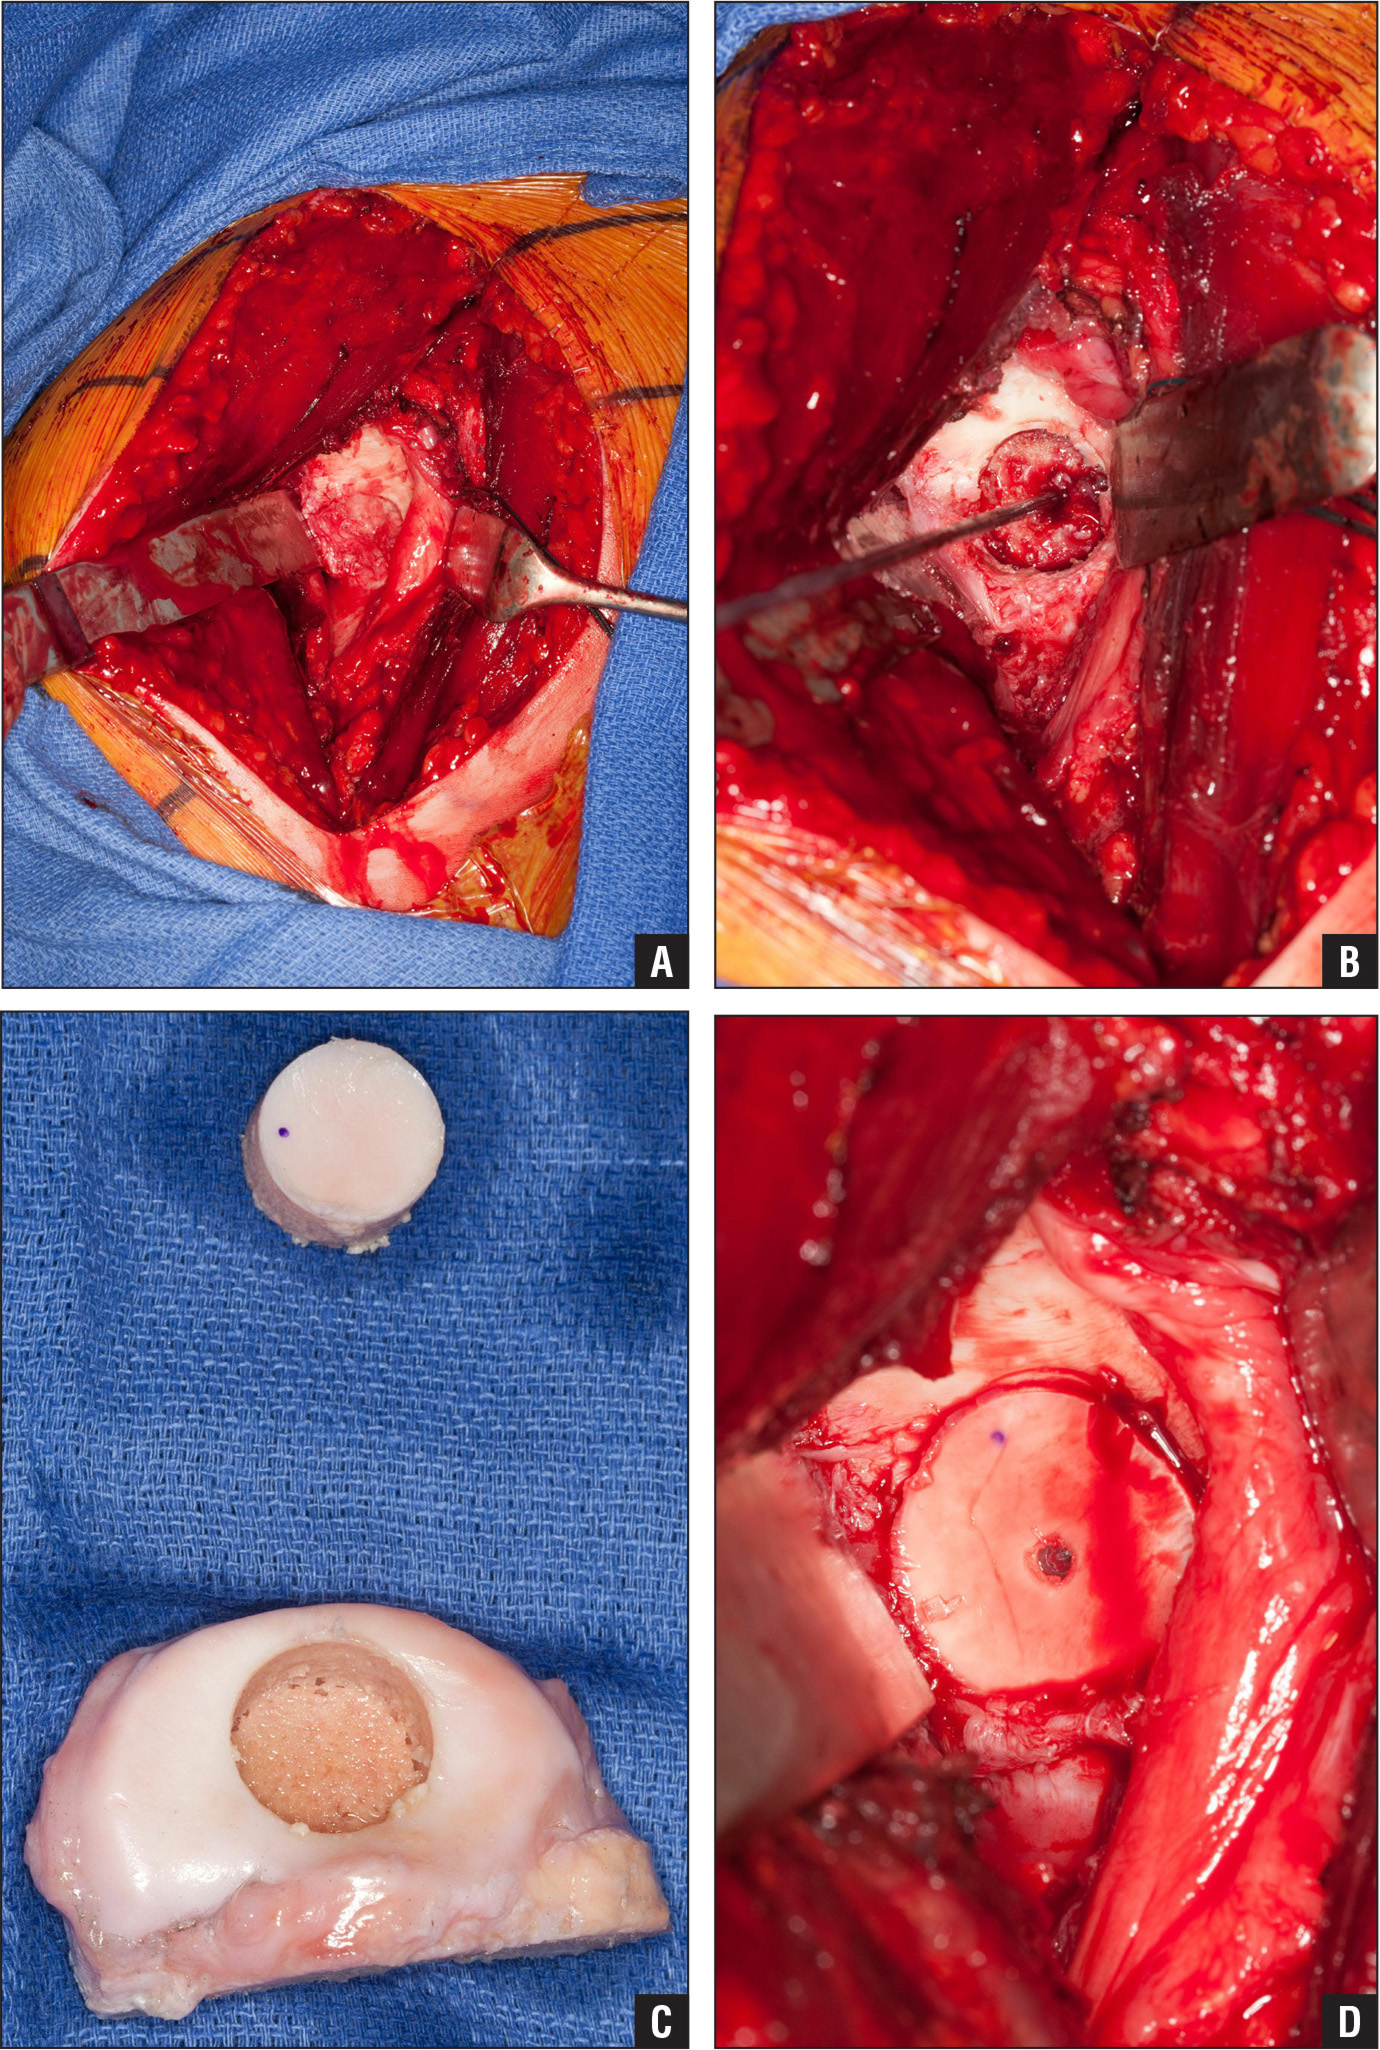 Intraoperative photographs showing the large osteochondritis dissecans lesion of the glenoid before (A) and after (B) preparation of the recipient site. The osteochondral allograft was procured from the medial tibial plateau (C) and subsequently transplanted into the glenoid recipient site in a press-fit fashion with biocompression screw backup fixation (D).